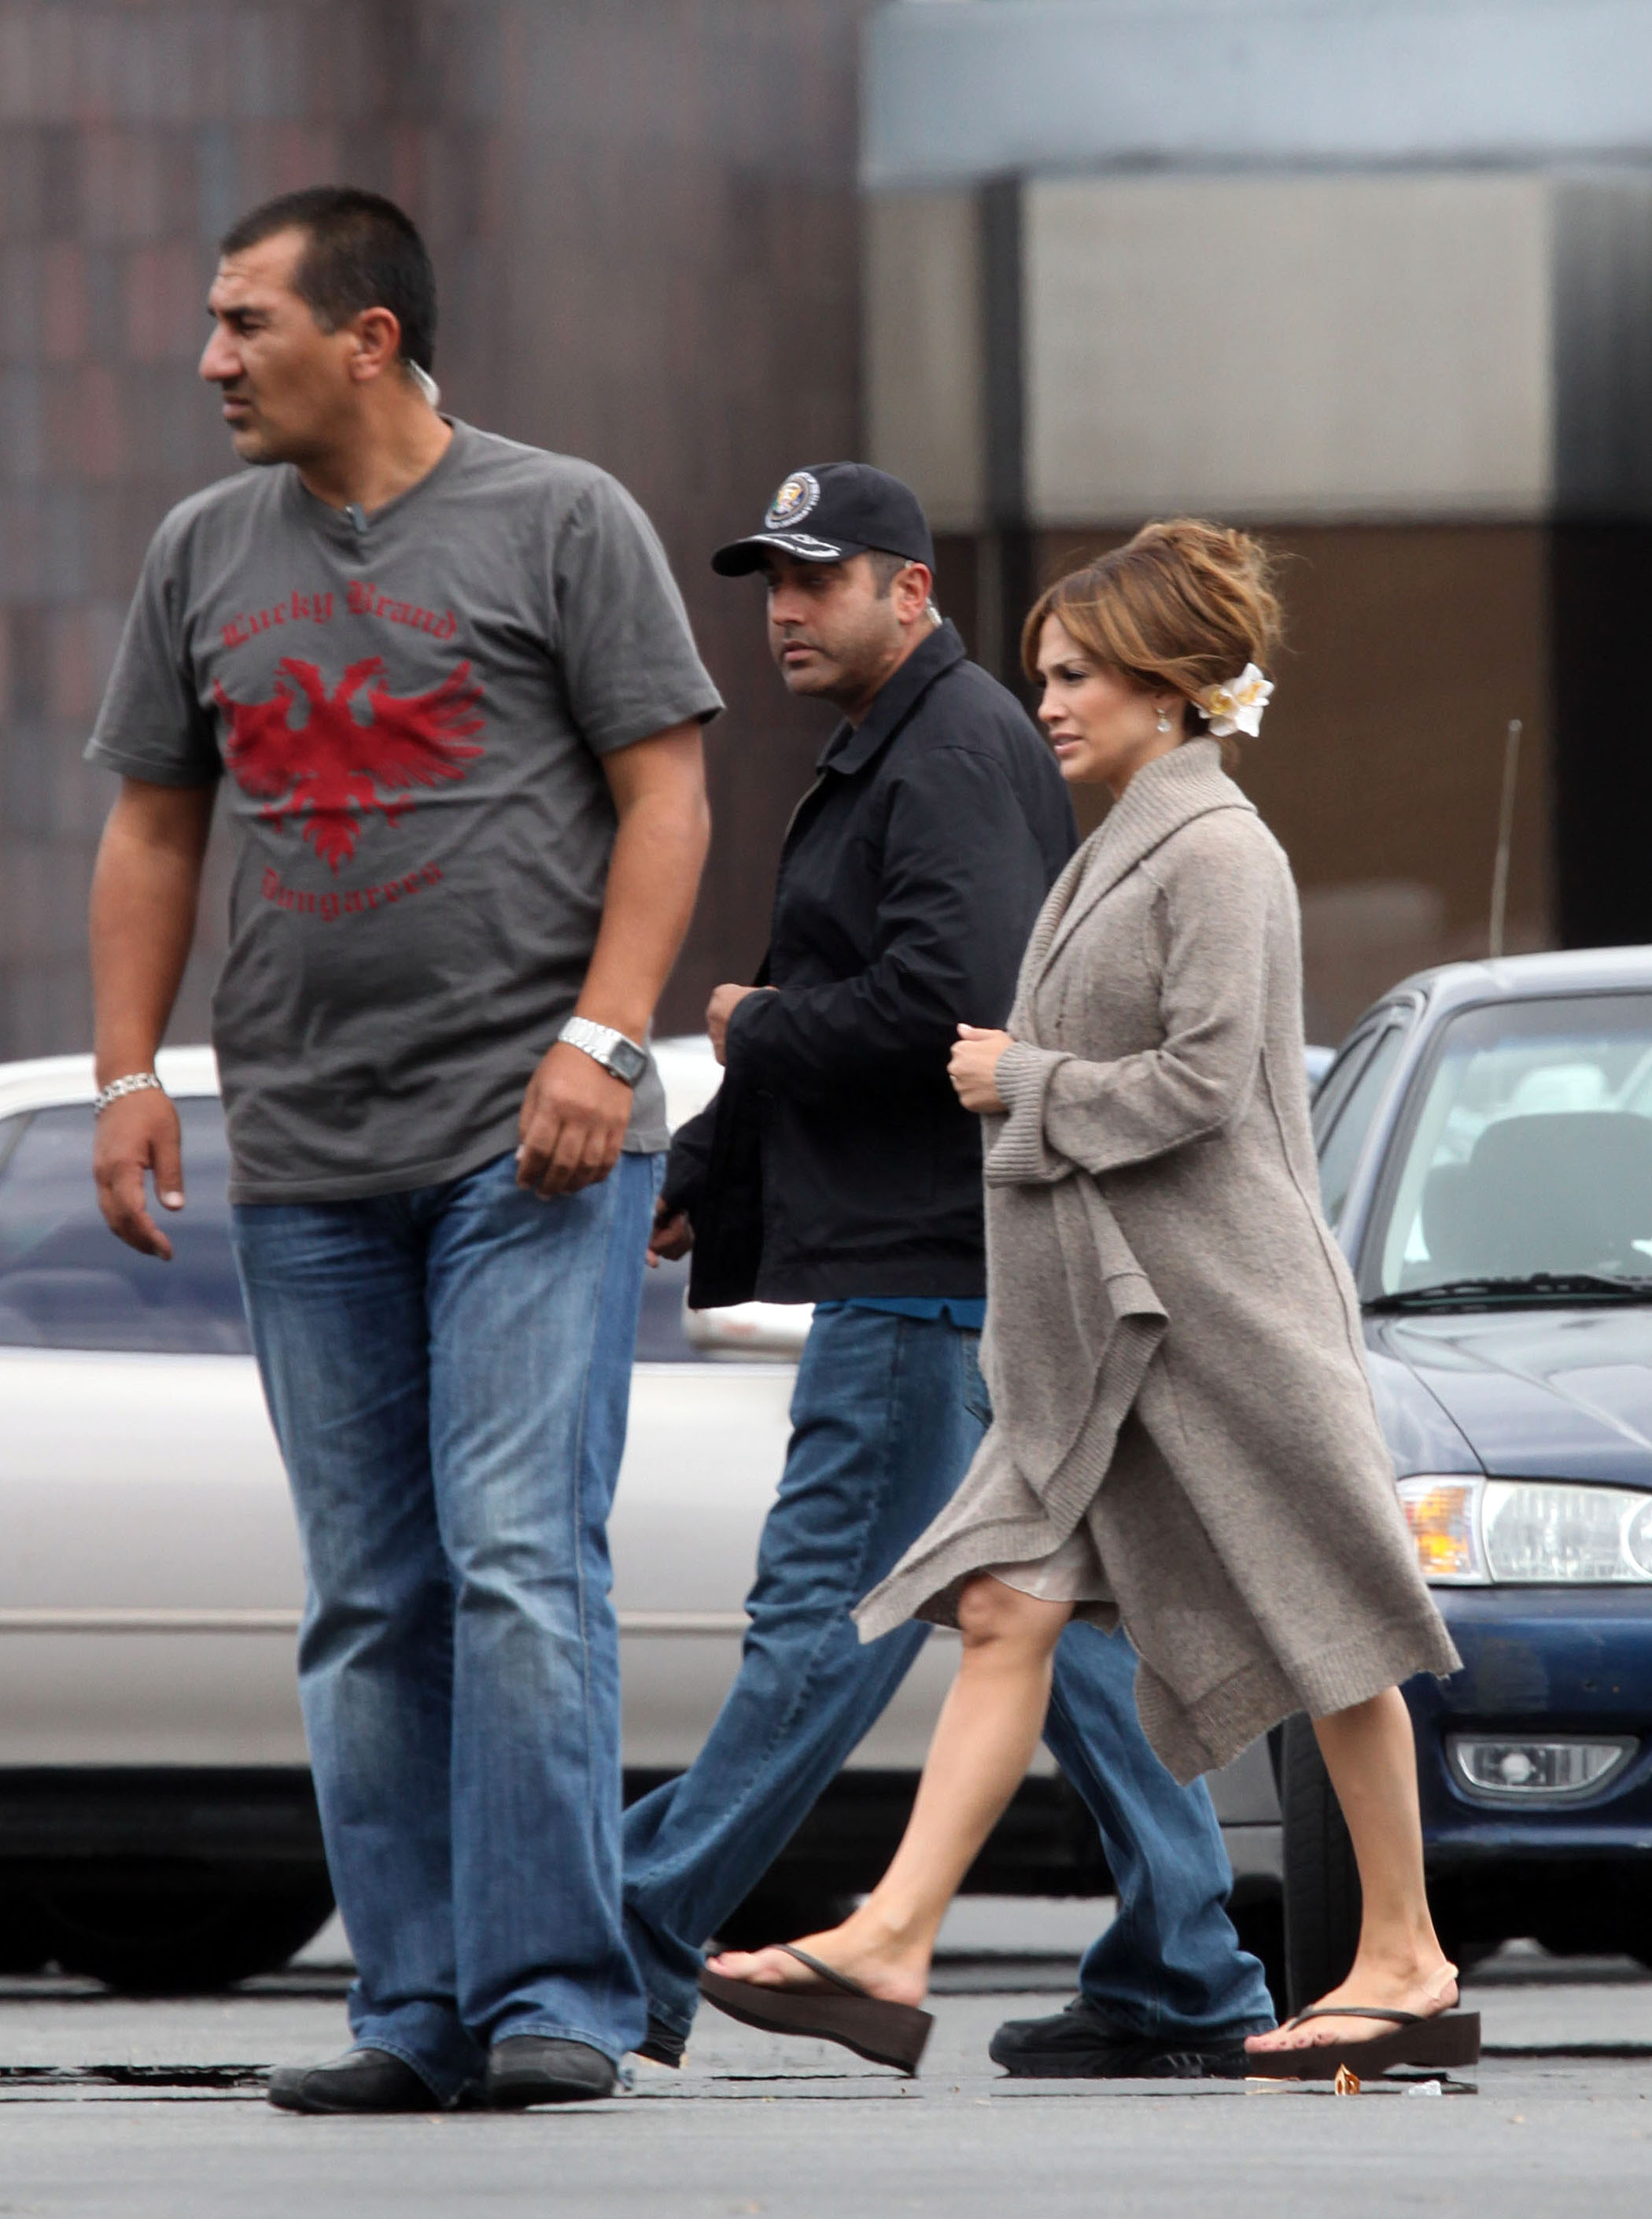 40525_Preppie_-_Jennifer_Lopez_on_The_Back-Up_Plan_set_in_Los_Angeles_-_June_15_2009_019_122_142lo.jpg